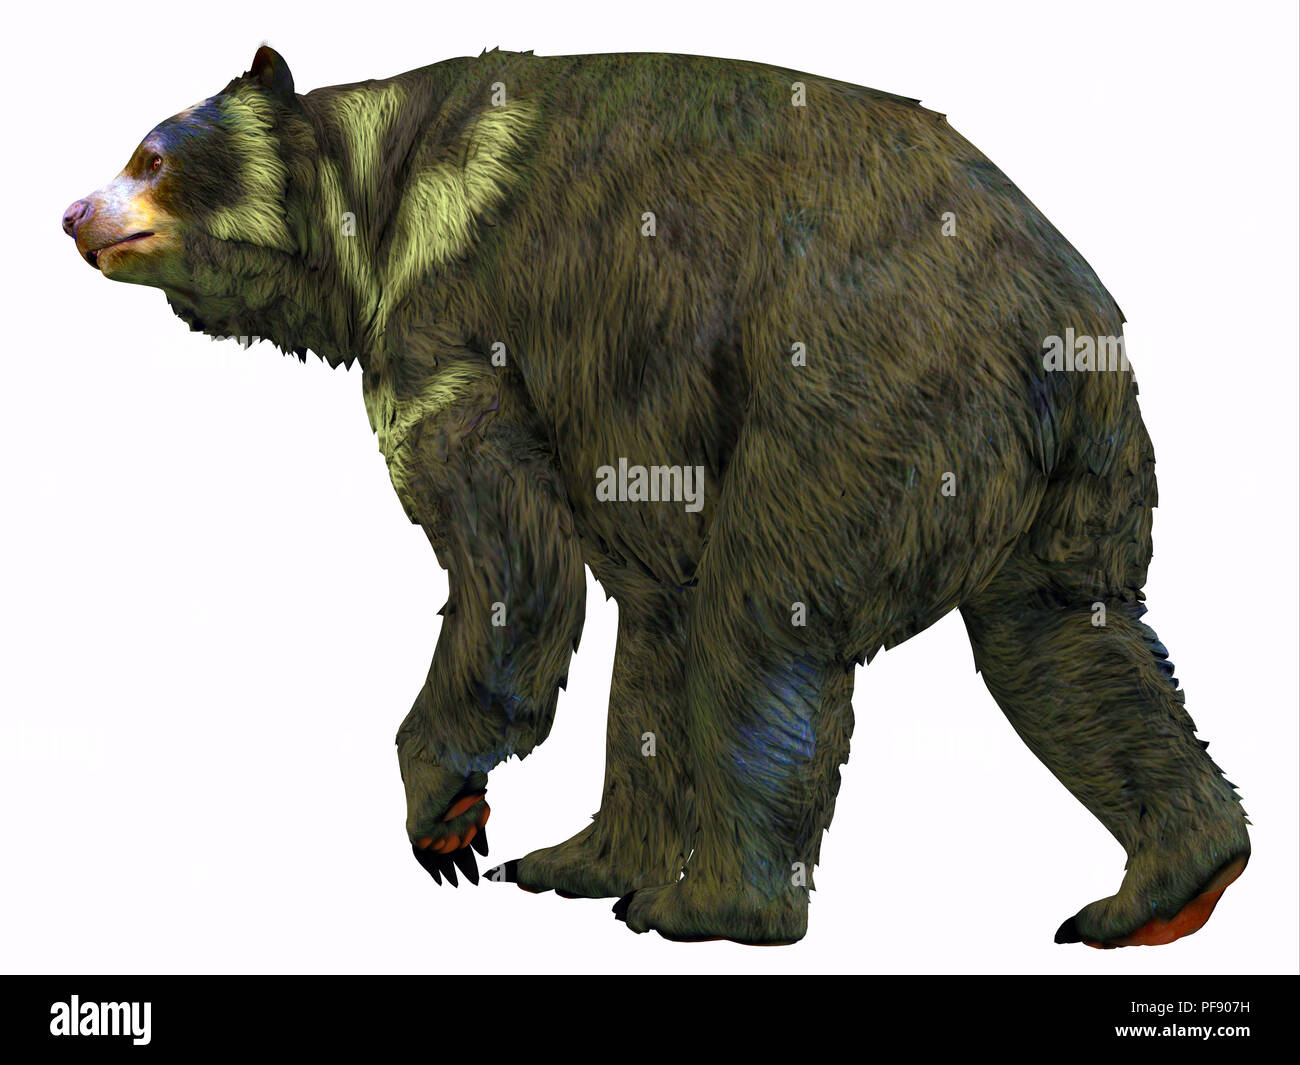 Arctodus Bear - Arctodus was an omnivorous short-faced bear that lived in North America during the Pleistocene Period. - Stock Image